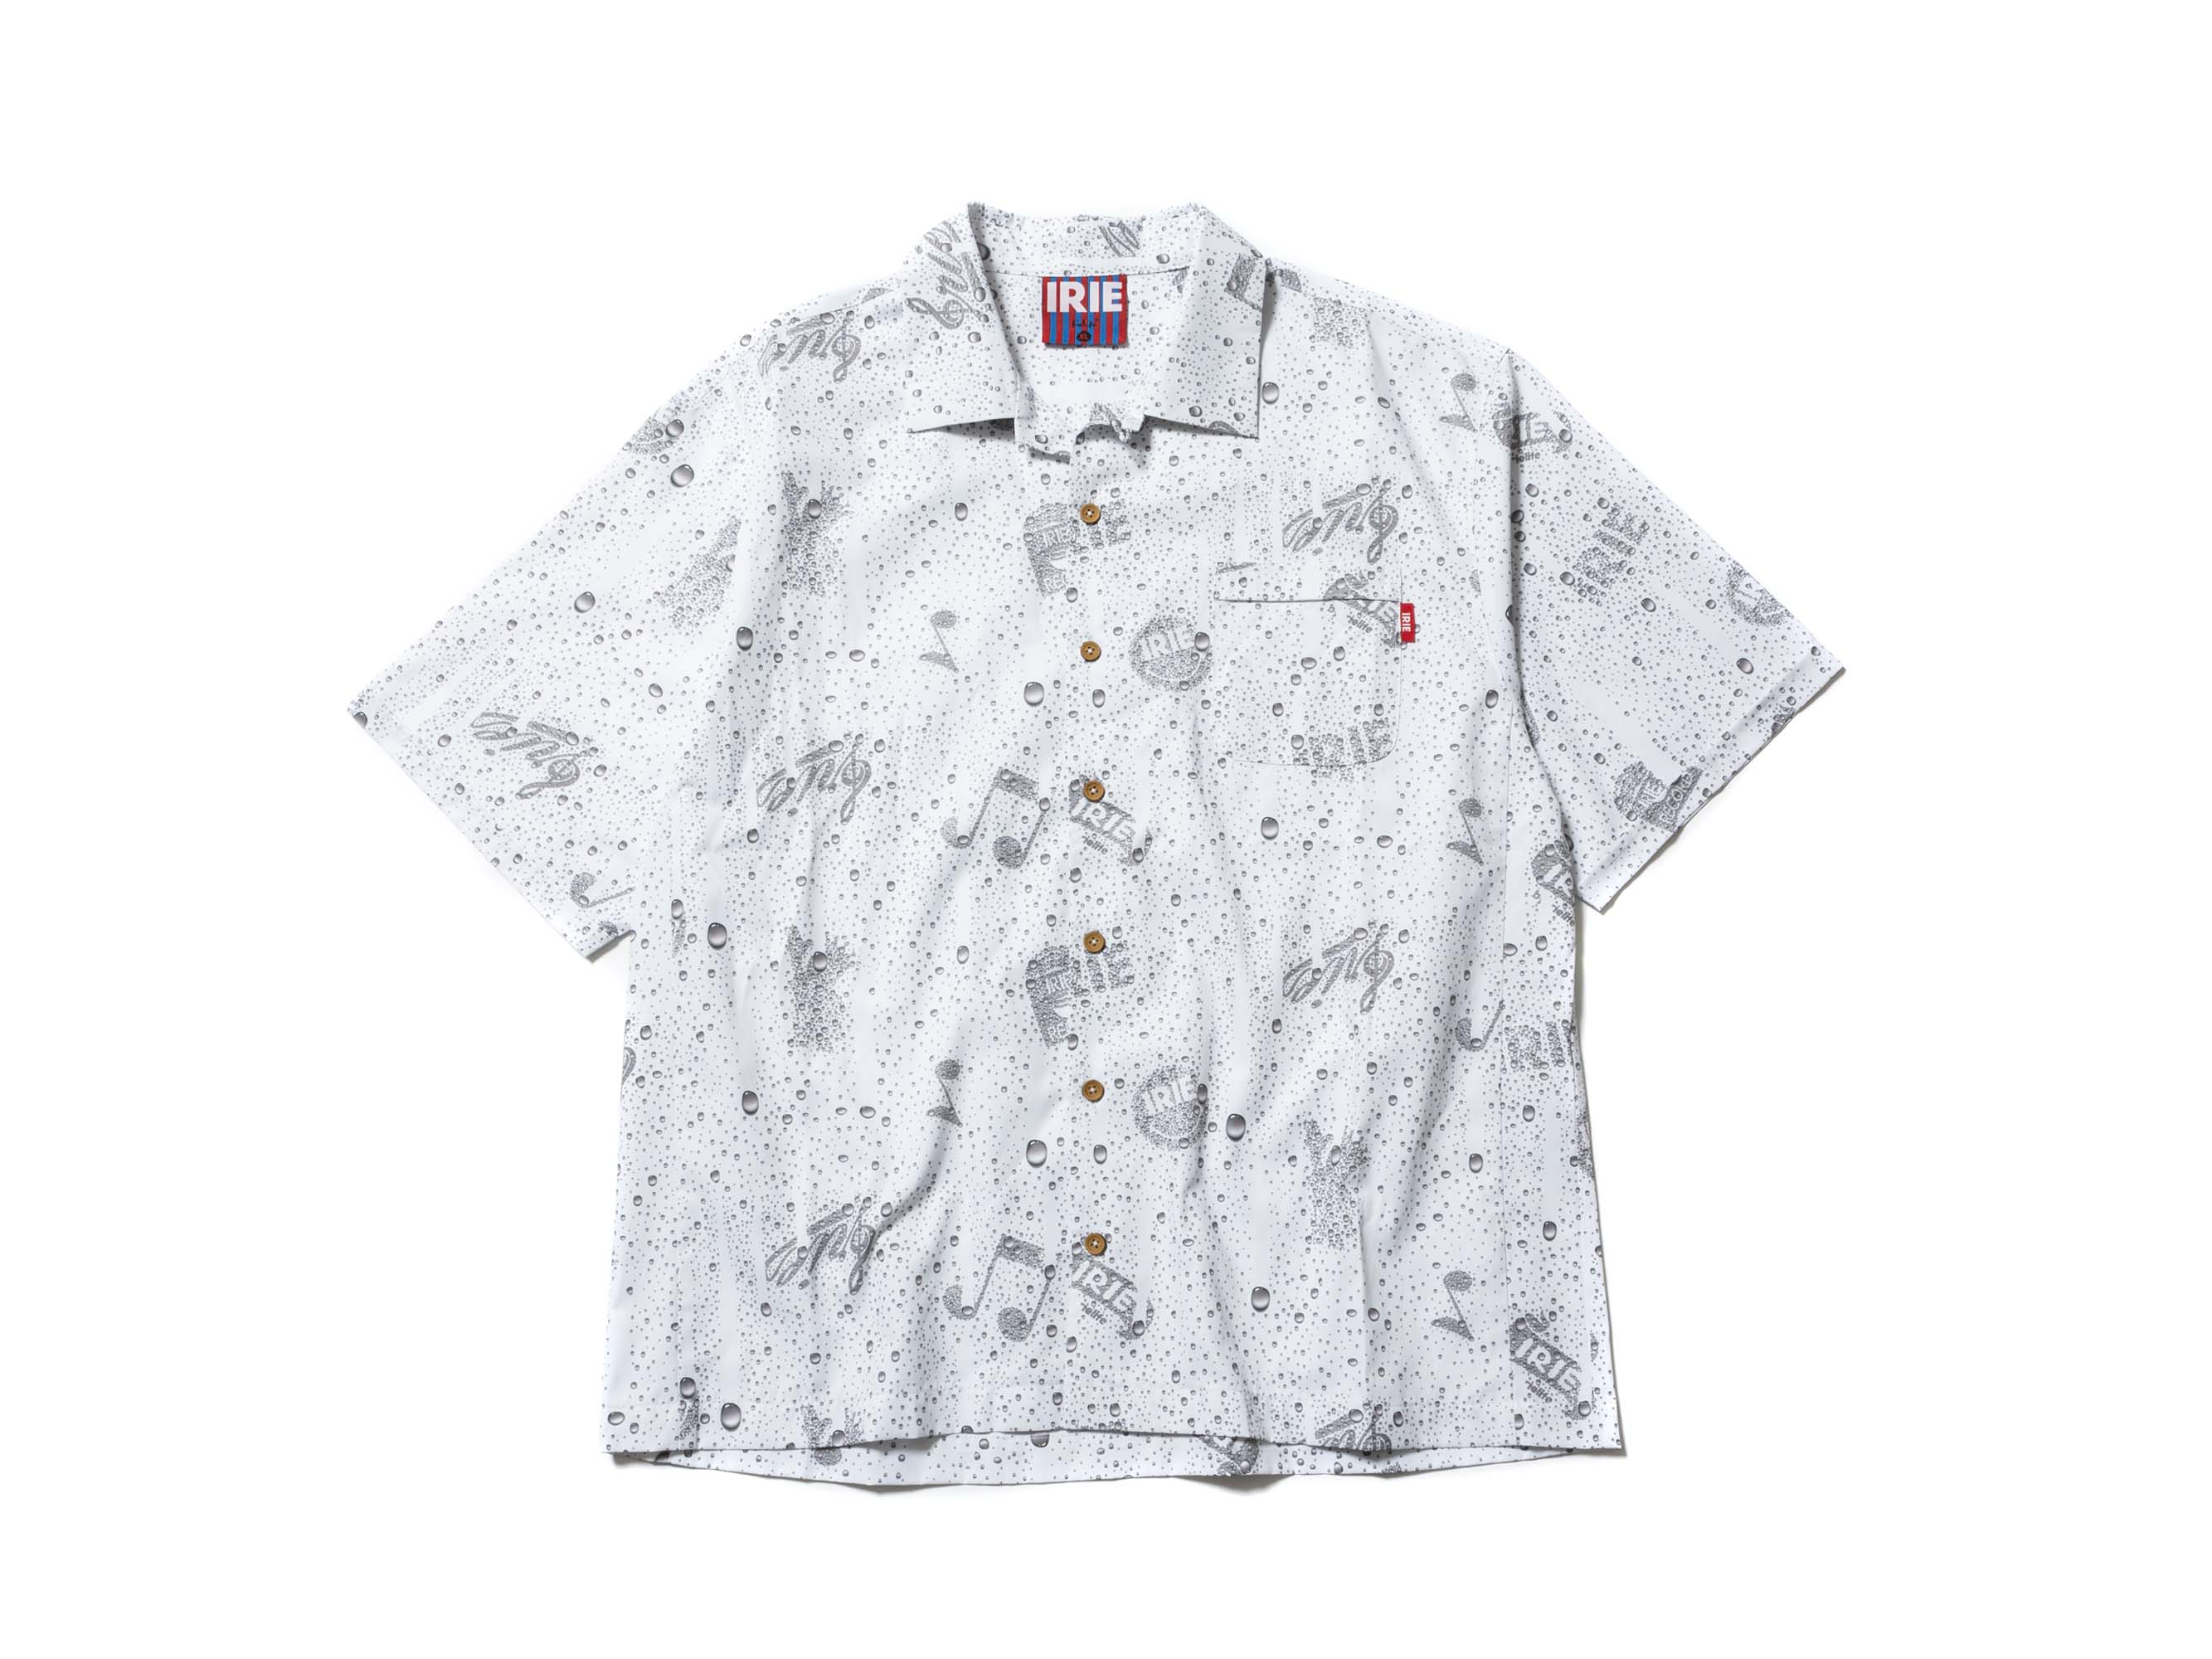 【20% OFF】IRIE SPLASH S/S SHIRT - IRIE by irielife